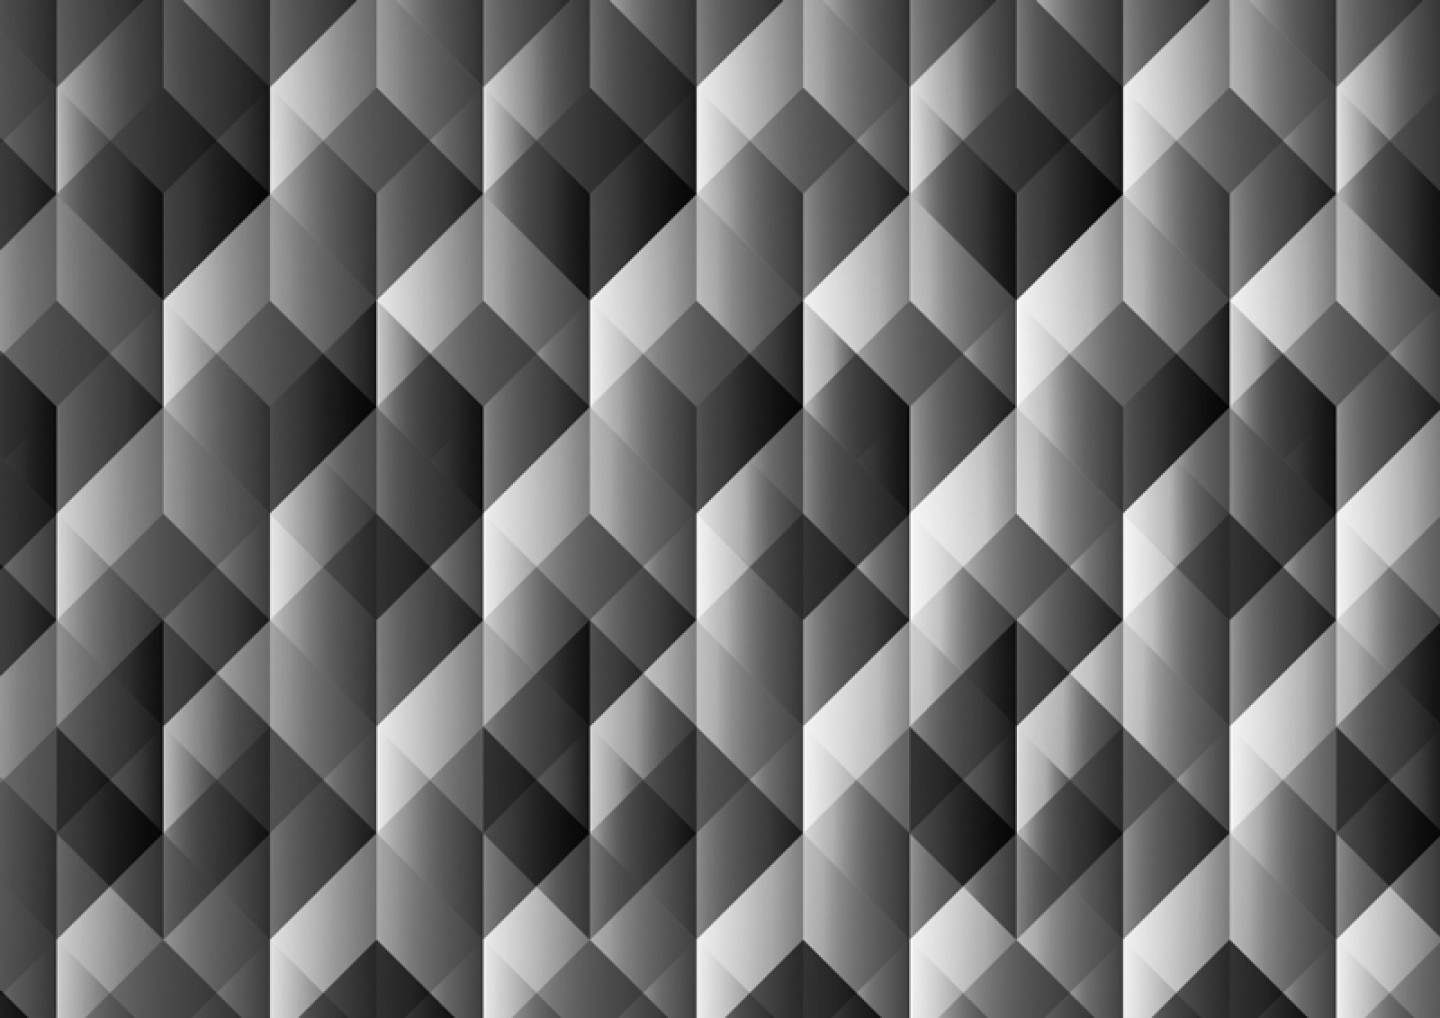 seamless-geometrical-pattern-wrapping-paper-design_fkfp0aso_l